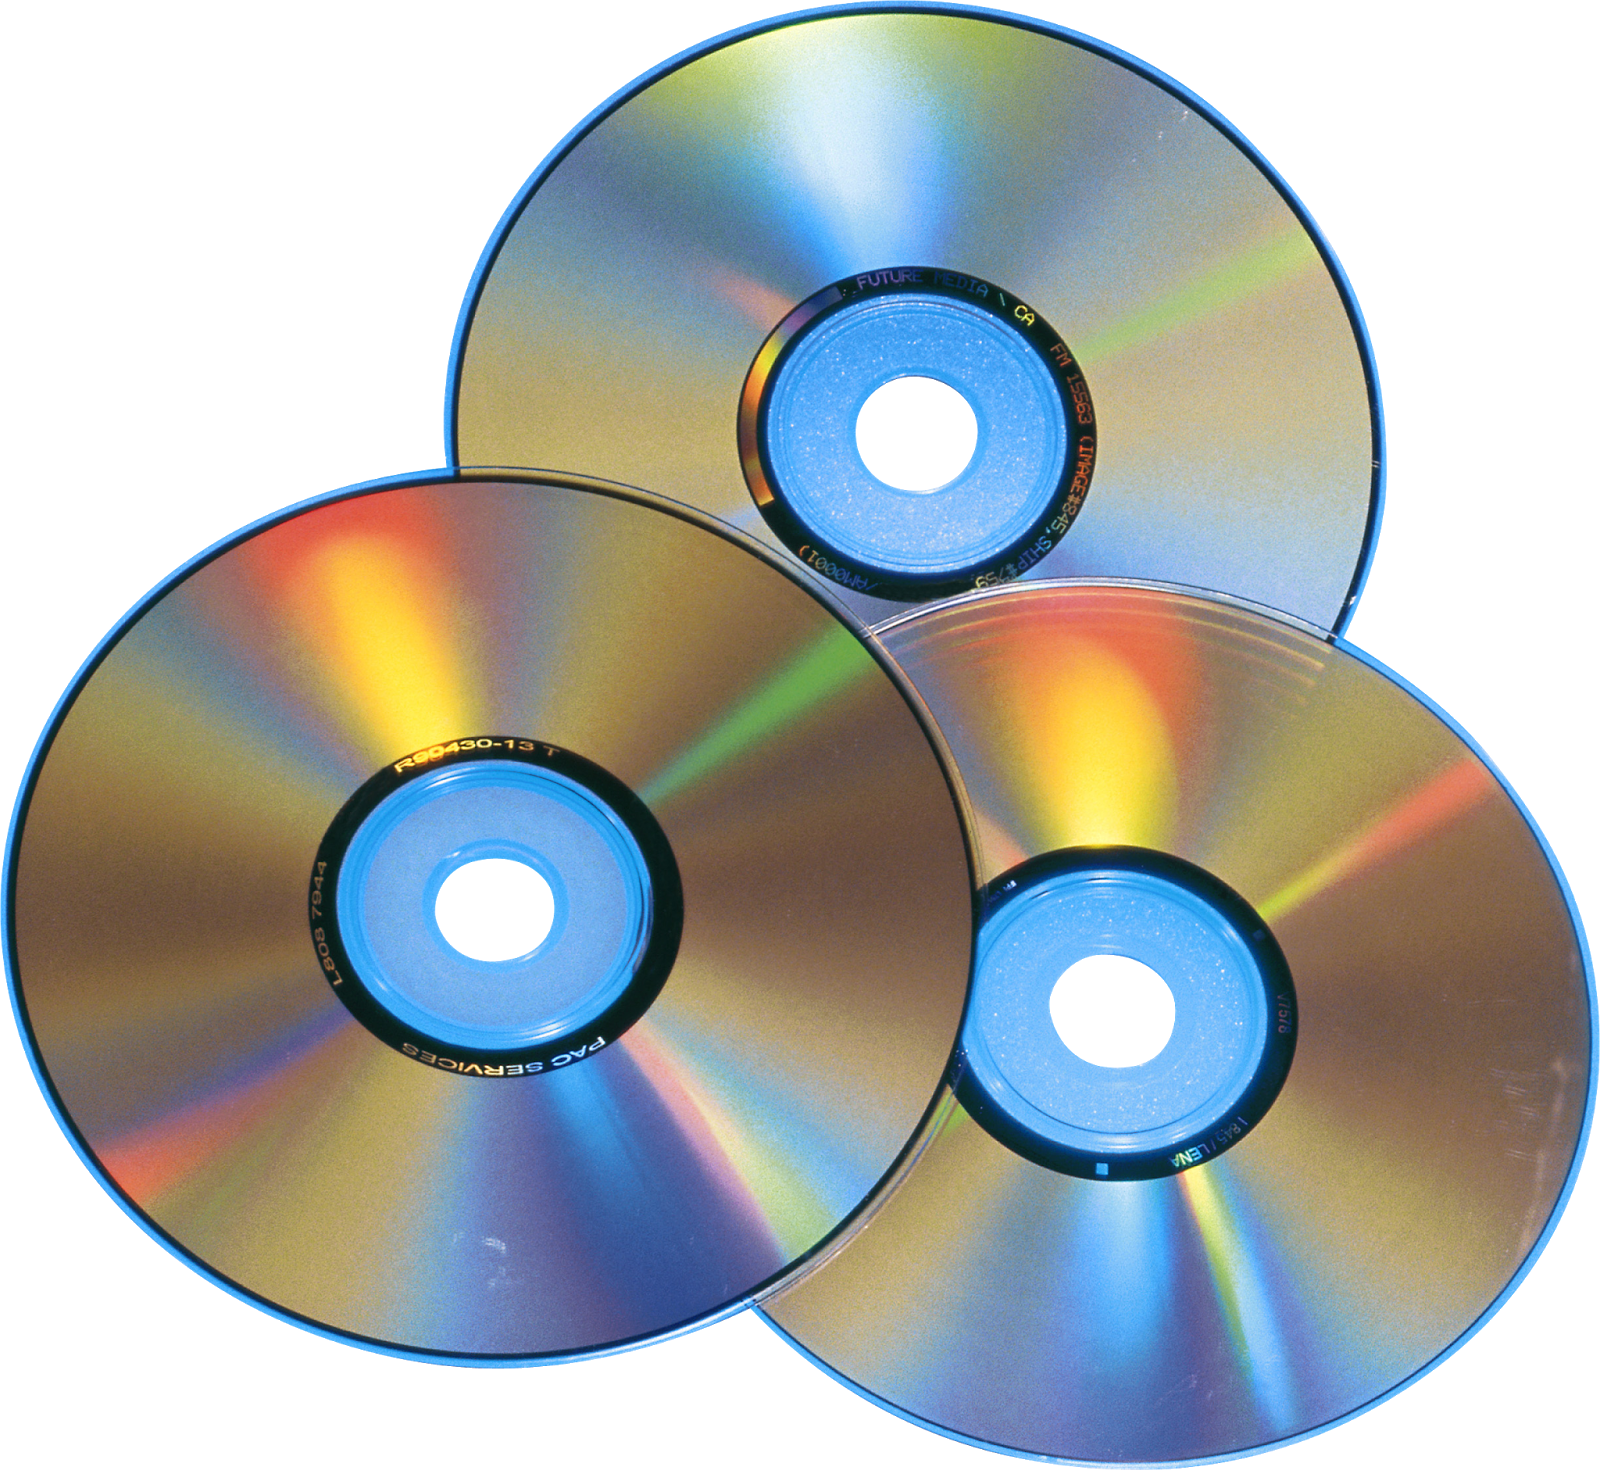 Electronic Dvd Storage Vhs Disc Bluray Device PNG Image